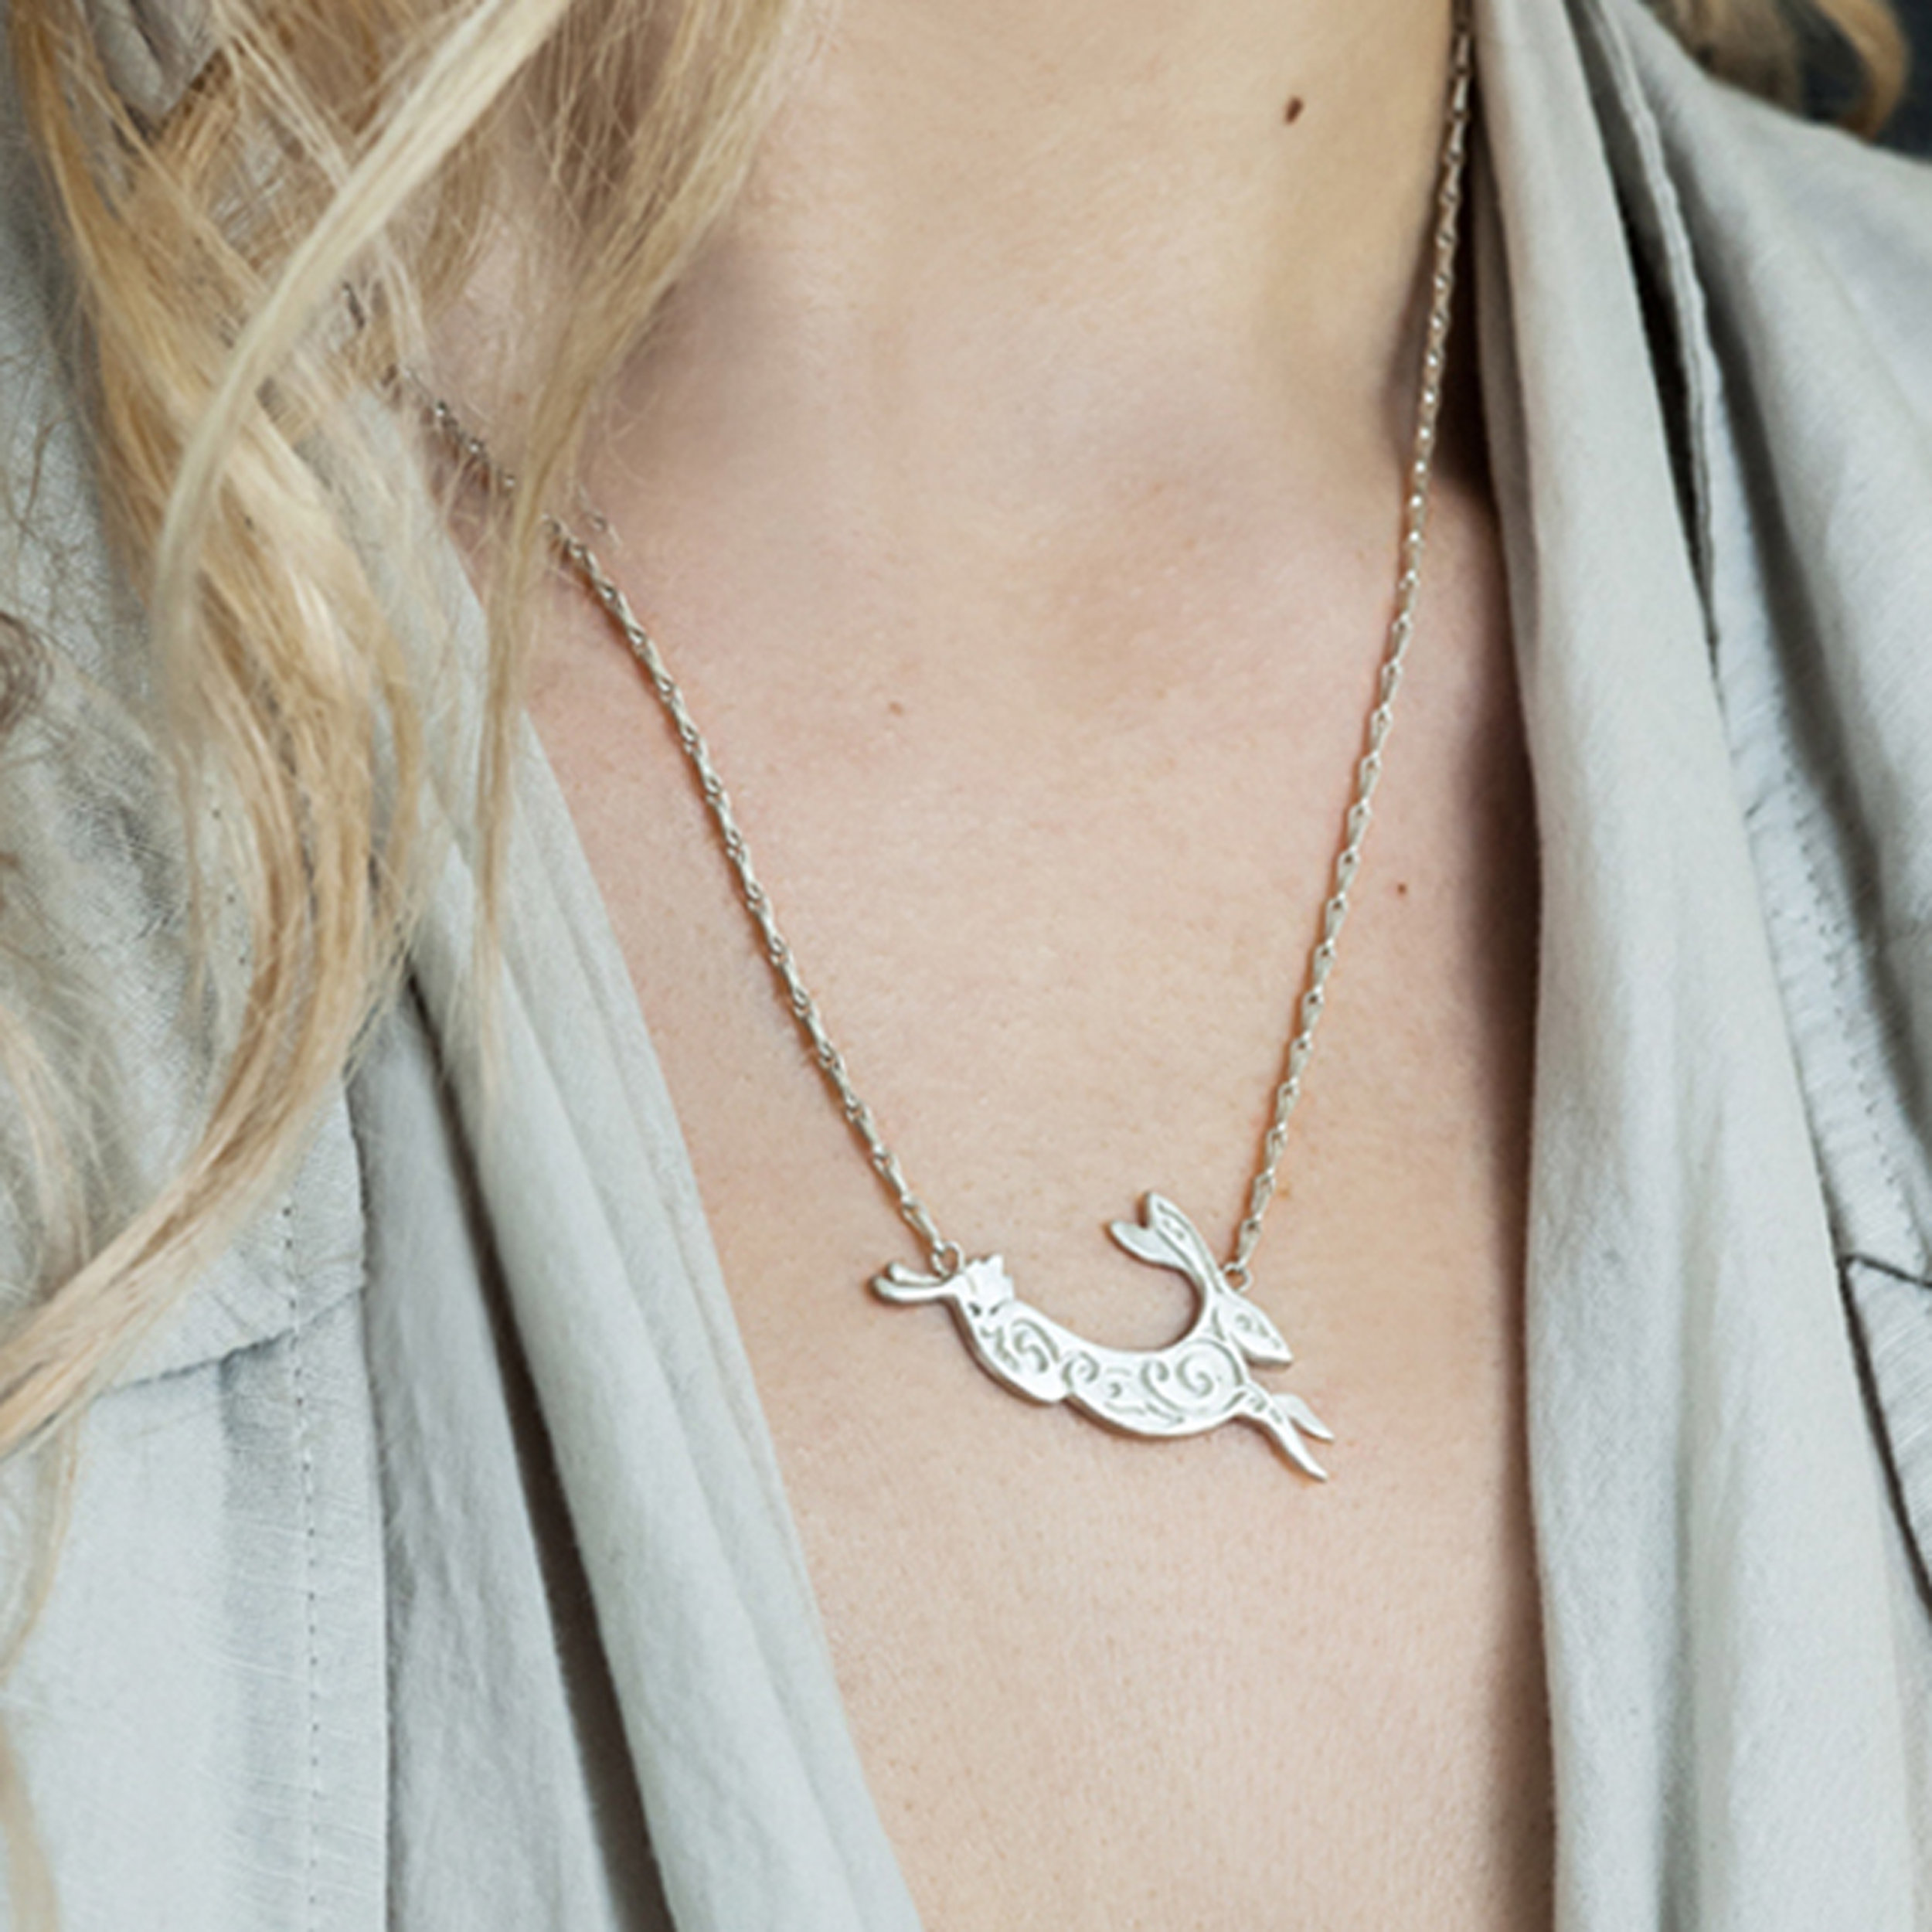 2. Small Silver Hare Necklace on model 300dpi